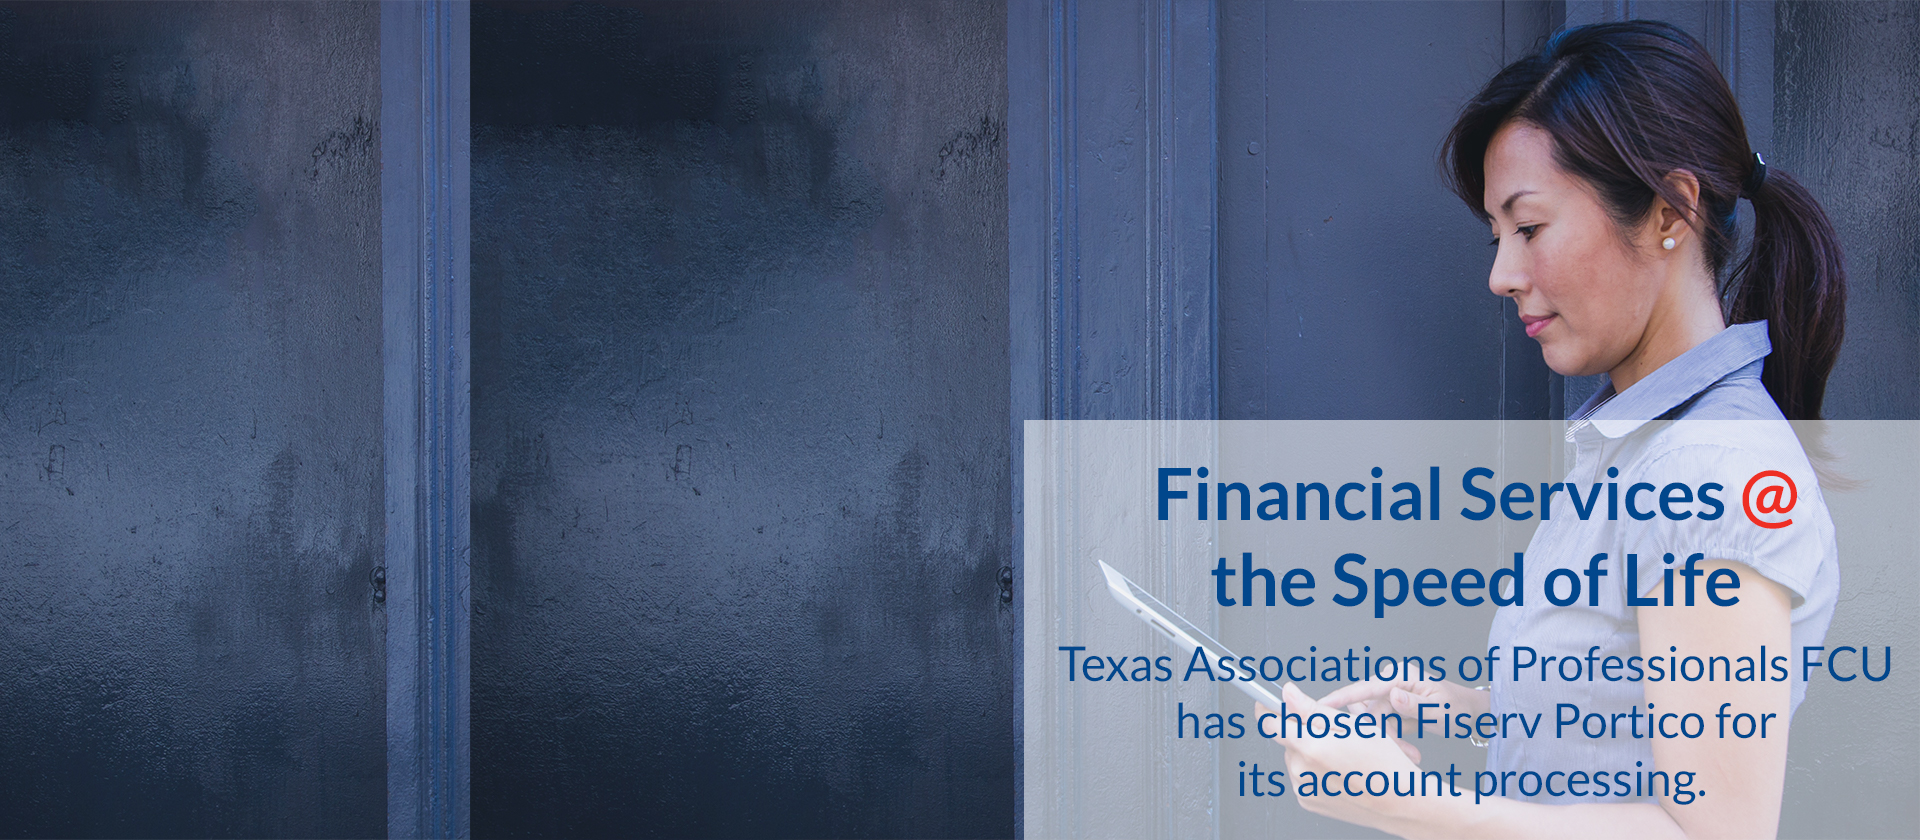 Financial Services at the Speed of Life: Texas Associations of Professionals FCU has chosen Fiserv Portico for its account processing.